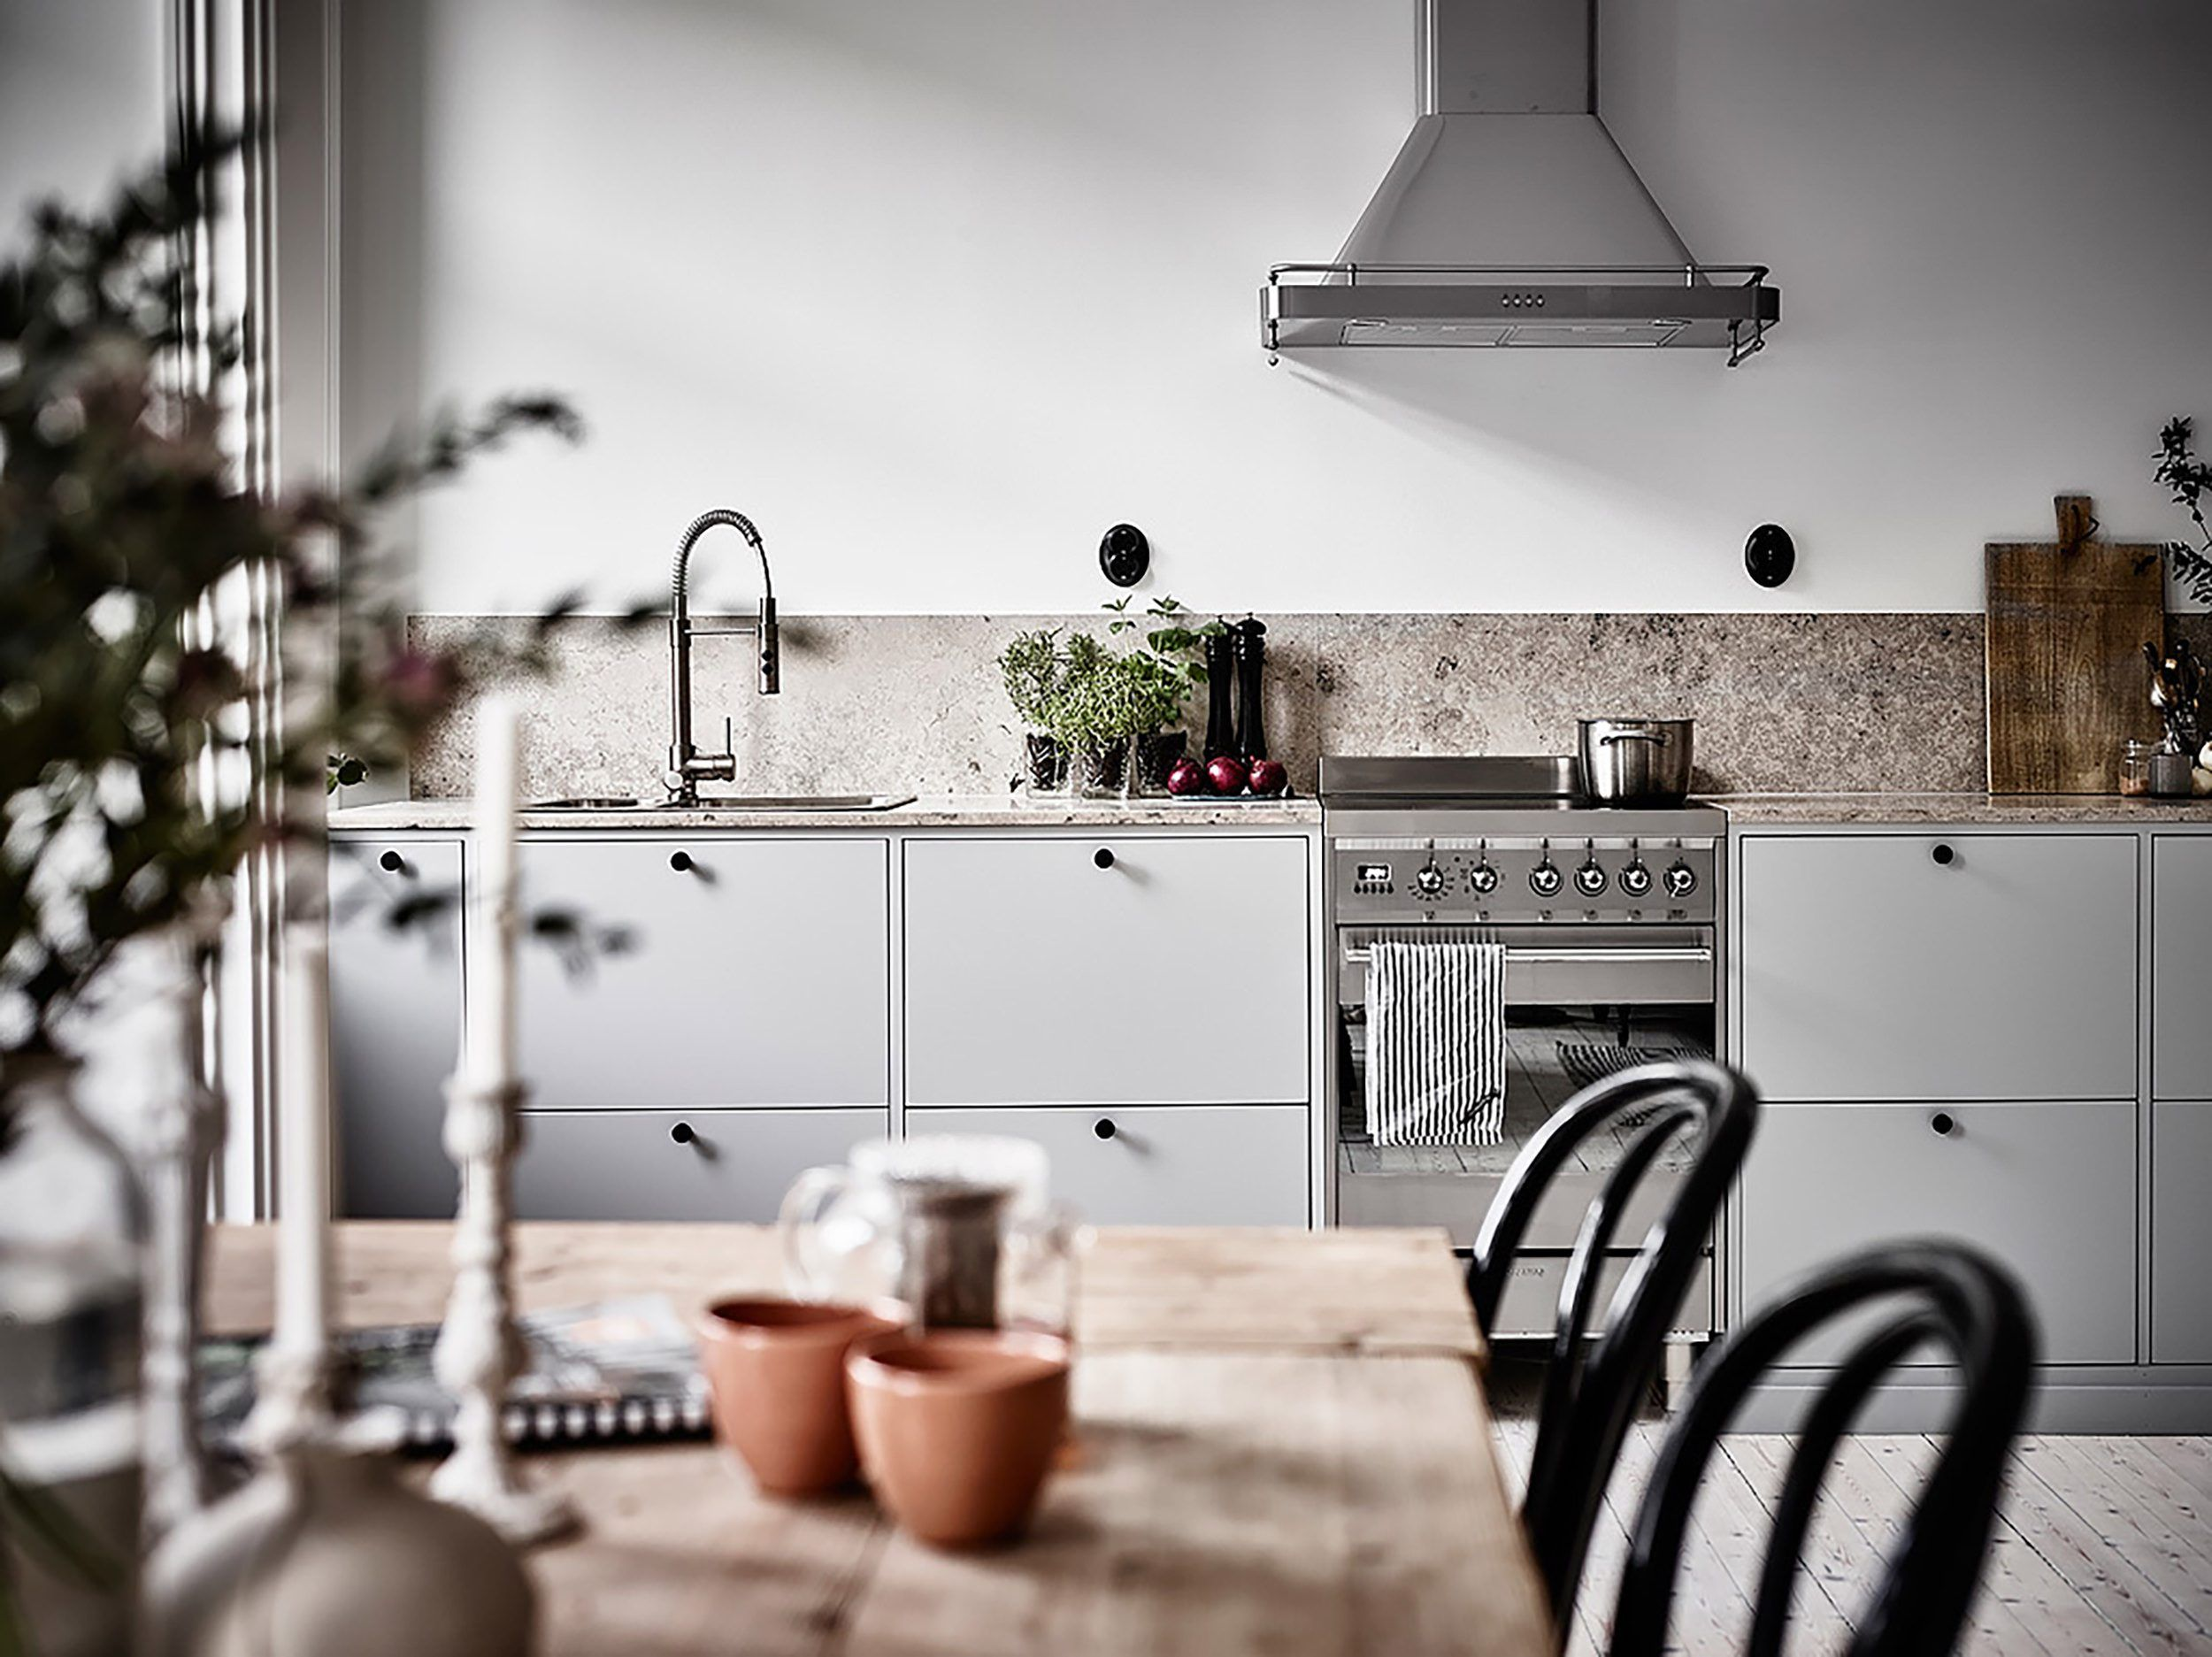 Kitchens With No Uppers Insanely Gorgeous Or Just Insane Tiny House Kitchen Modern Kitchen Design Kitchens Without Upper Cabinets